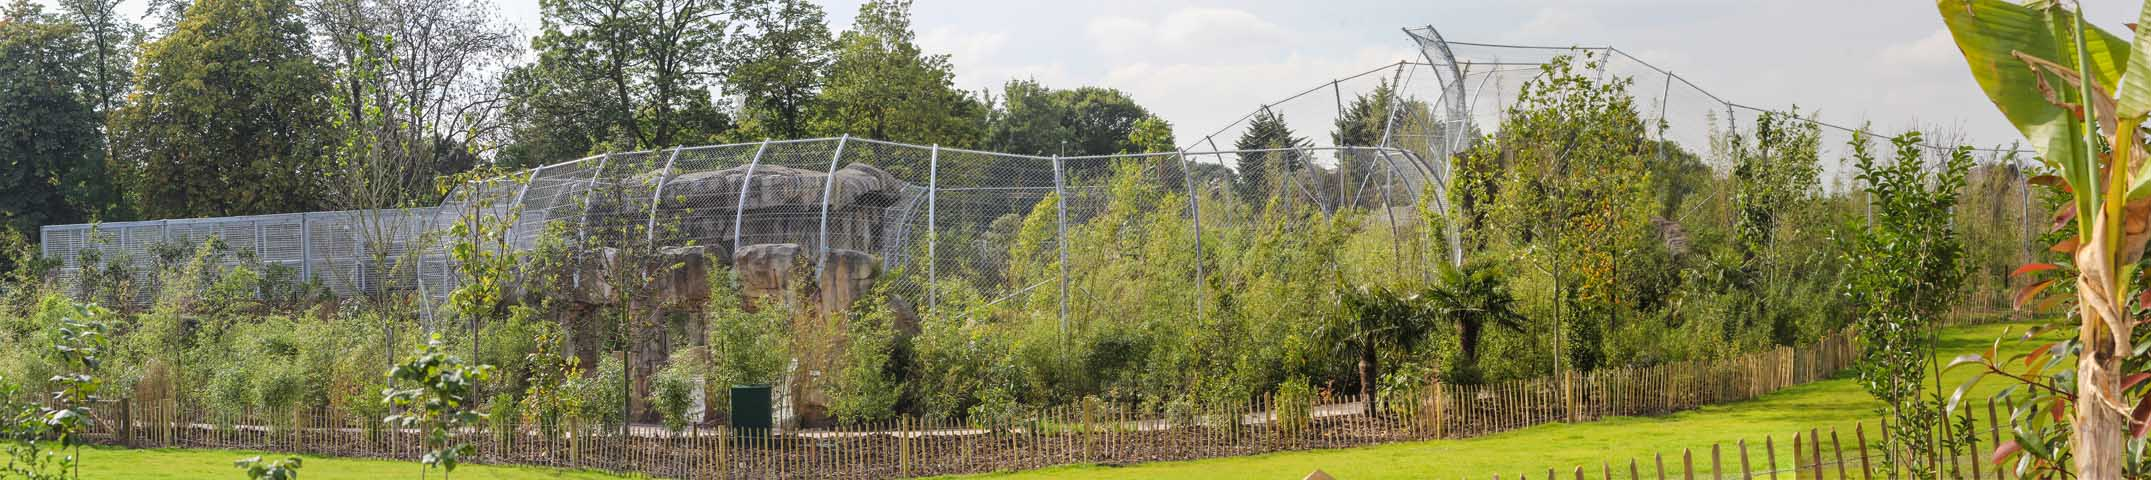 Case Studies - Channel 4 Feature State-of-the-Art Tiger Enclosure at Chester Zoo